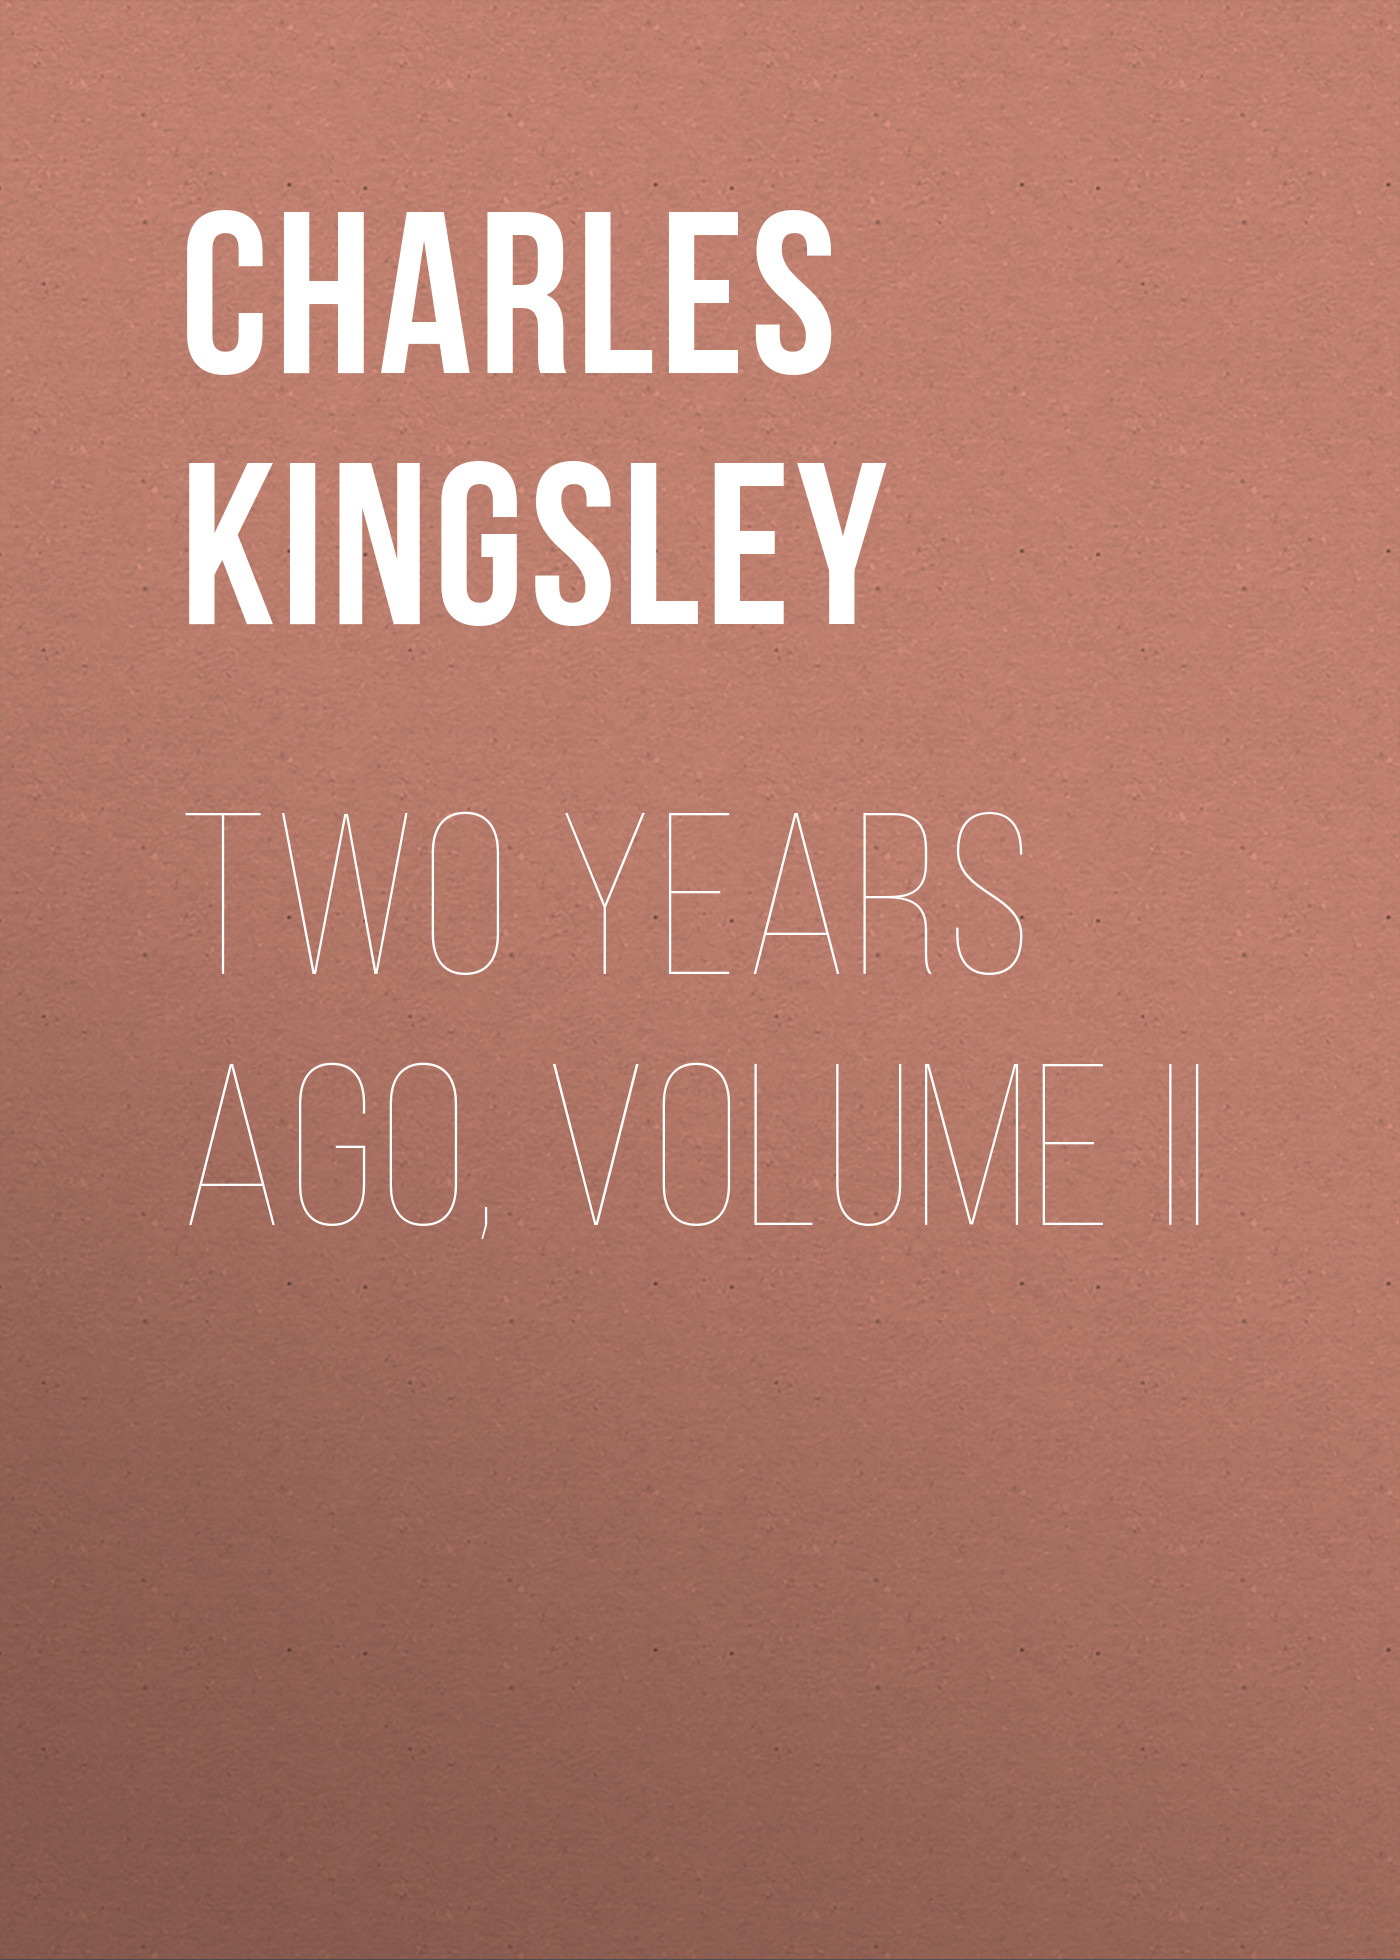 Charles Kingsley Two Years Ago, Volume II sweet years sy 6285l 13